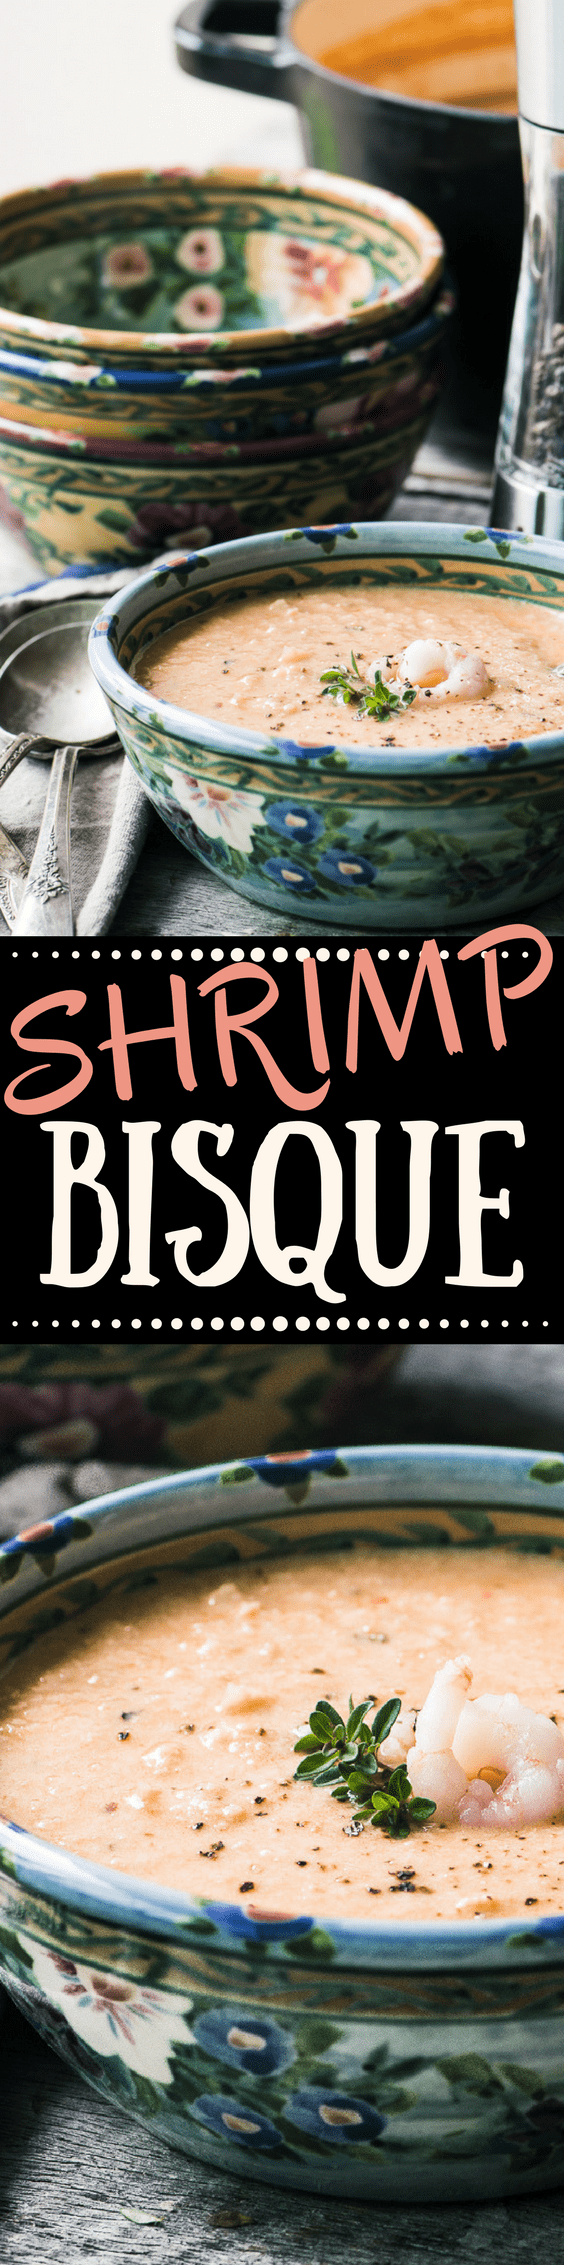 Shrimp Bisque ~ it's a little bit romantic, a little bit ladies who lunch, and it definitely has a 20th century vibe ~ but I think this richly flavored soup is ready for a comeback! #soup #shrimp #bisque #shrimprecipe #bestshrimpbisque #easyshrimpbisque @creamysoup #creamofshrimp #creamsoup